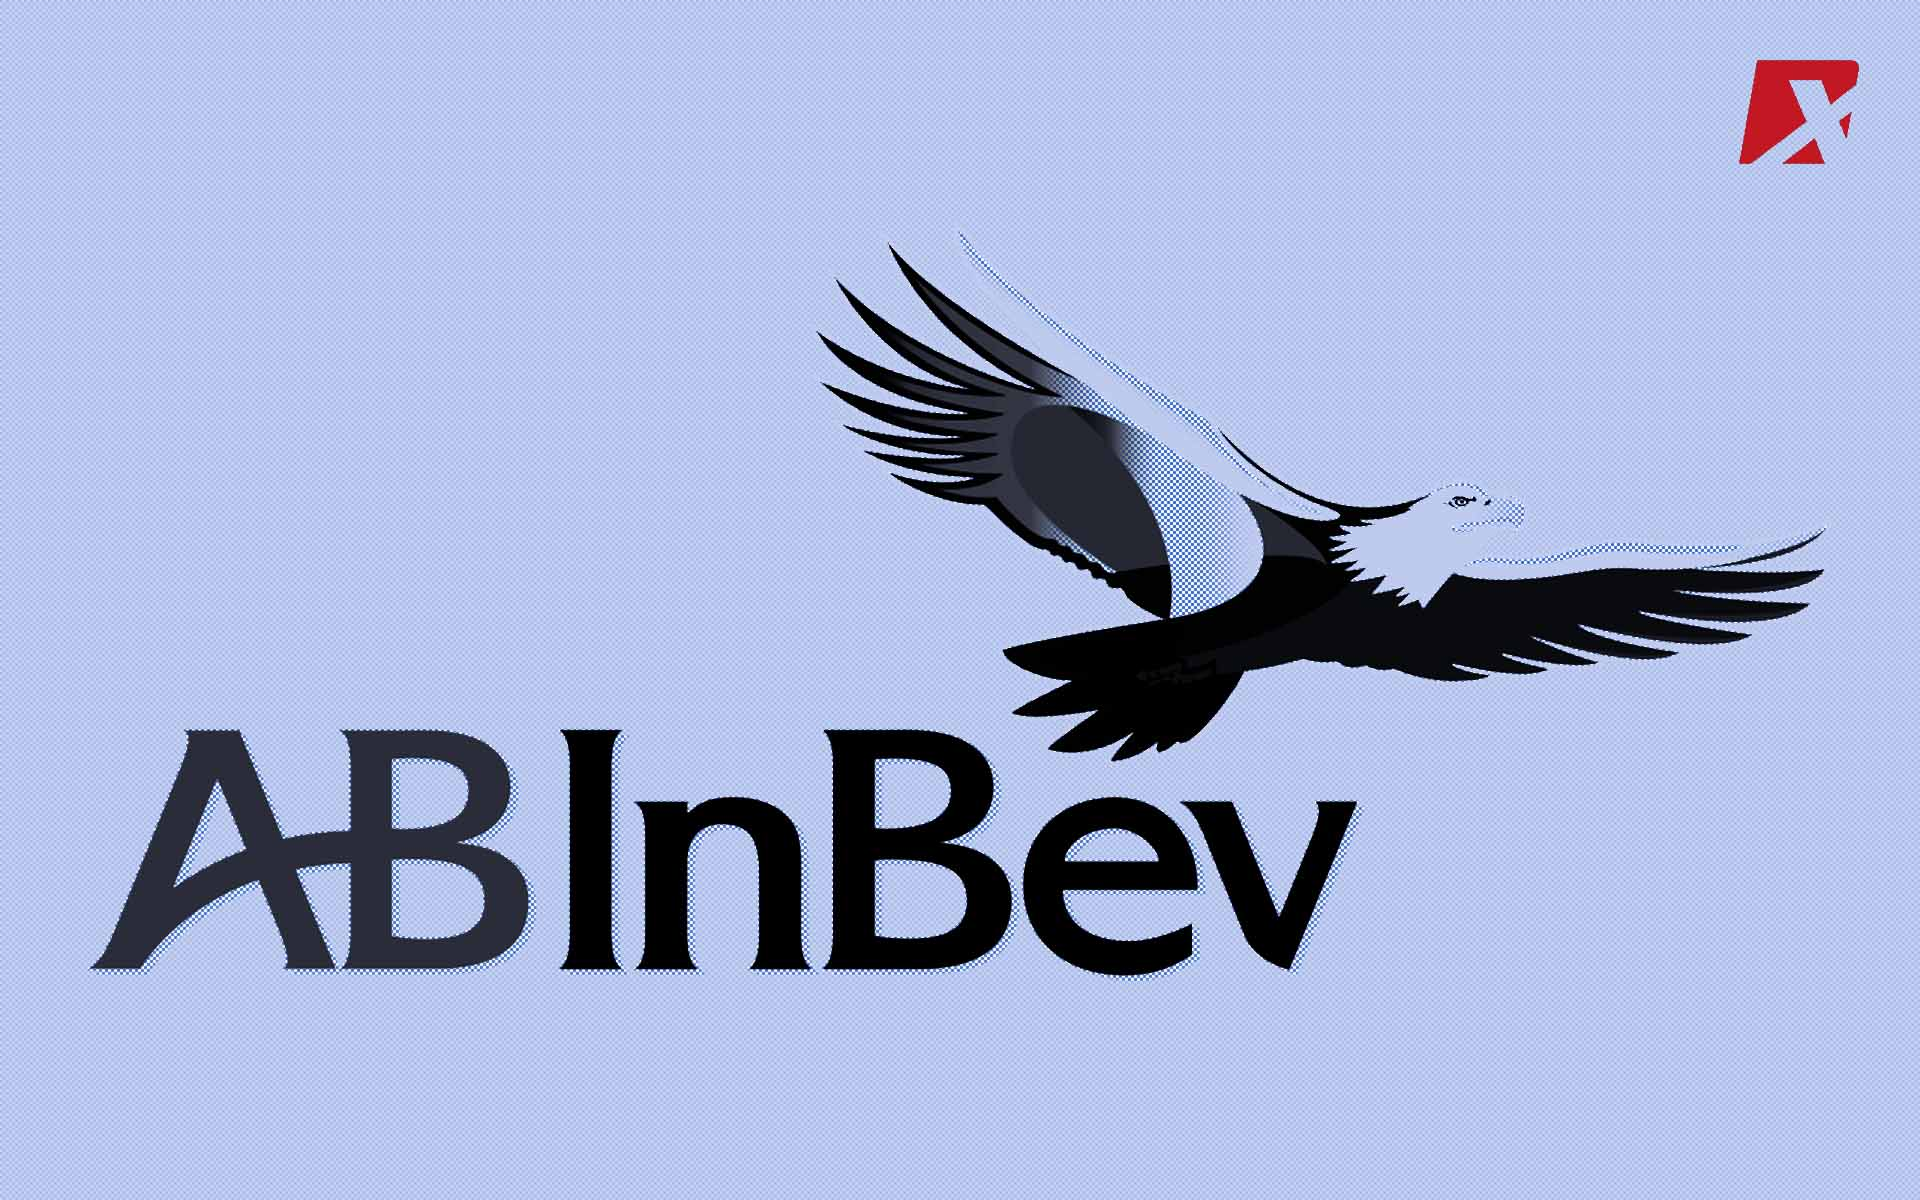 Anheuser Busch Inbev Launches First Blockchain Mobile Ad Campaign